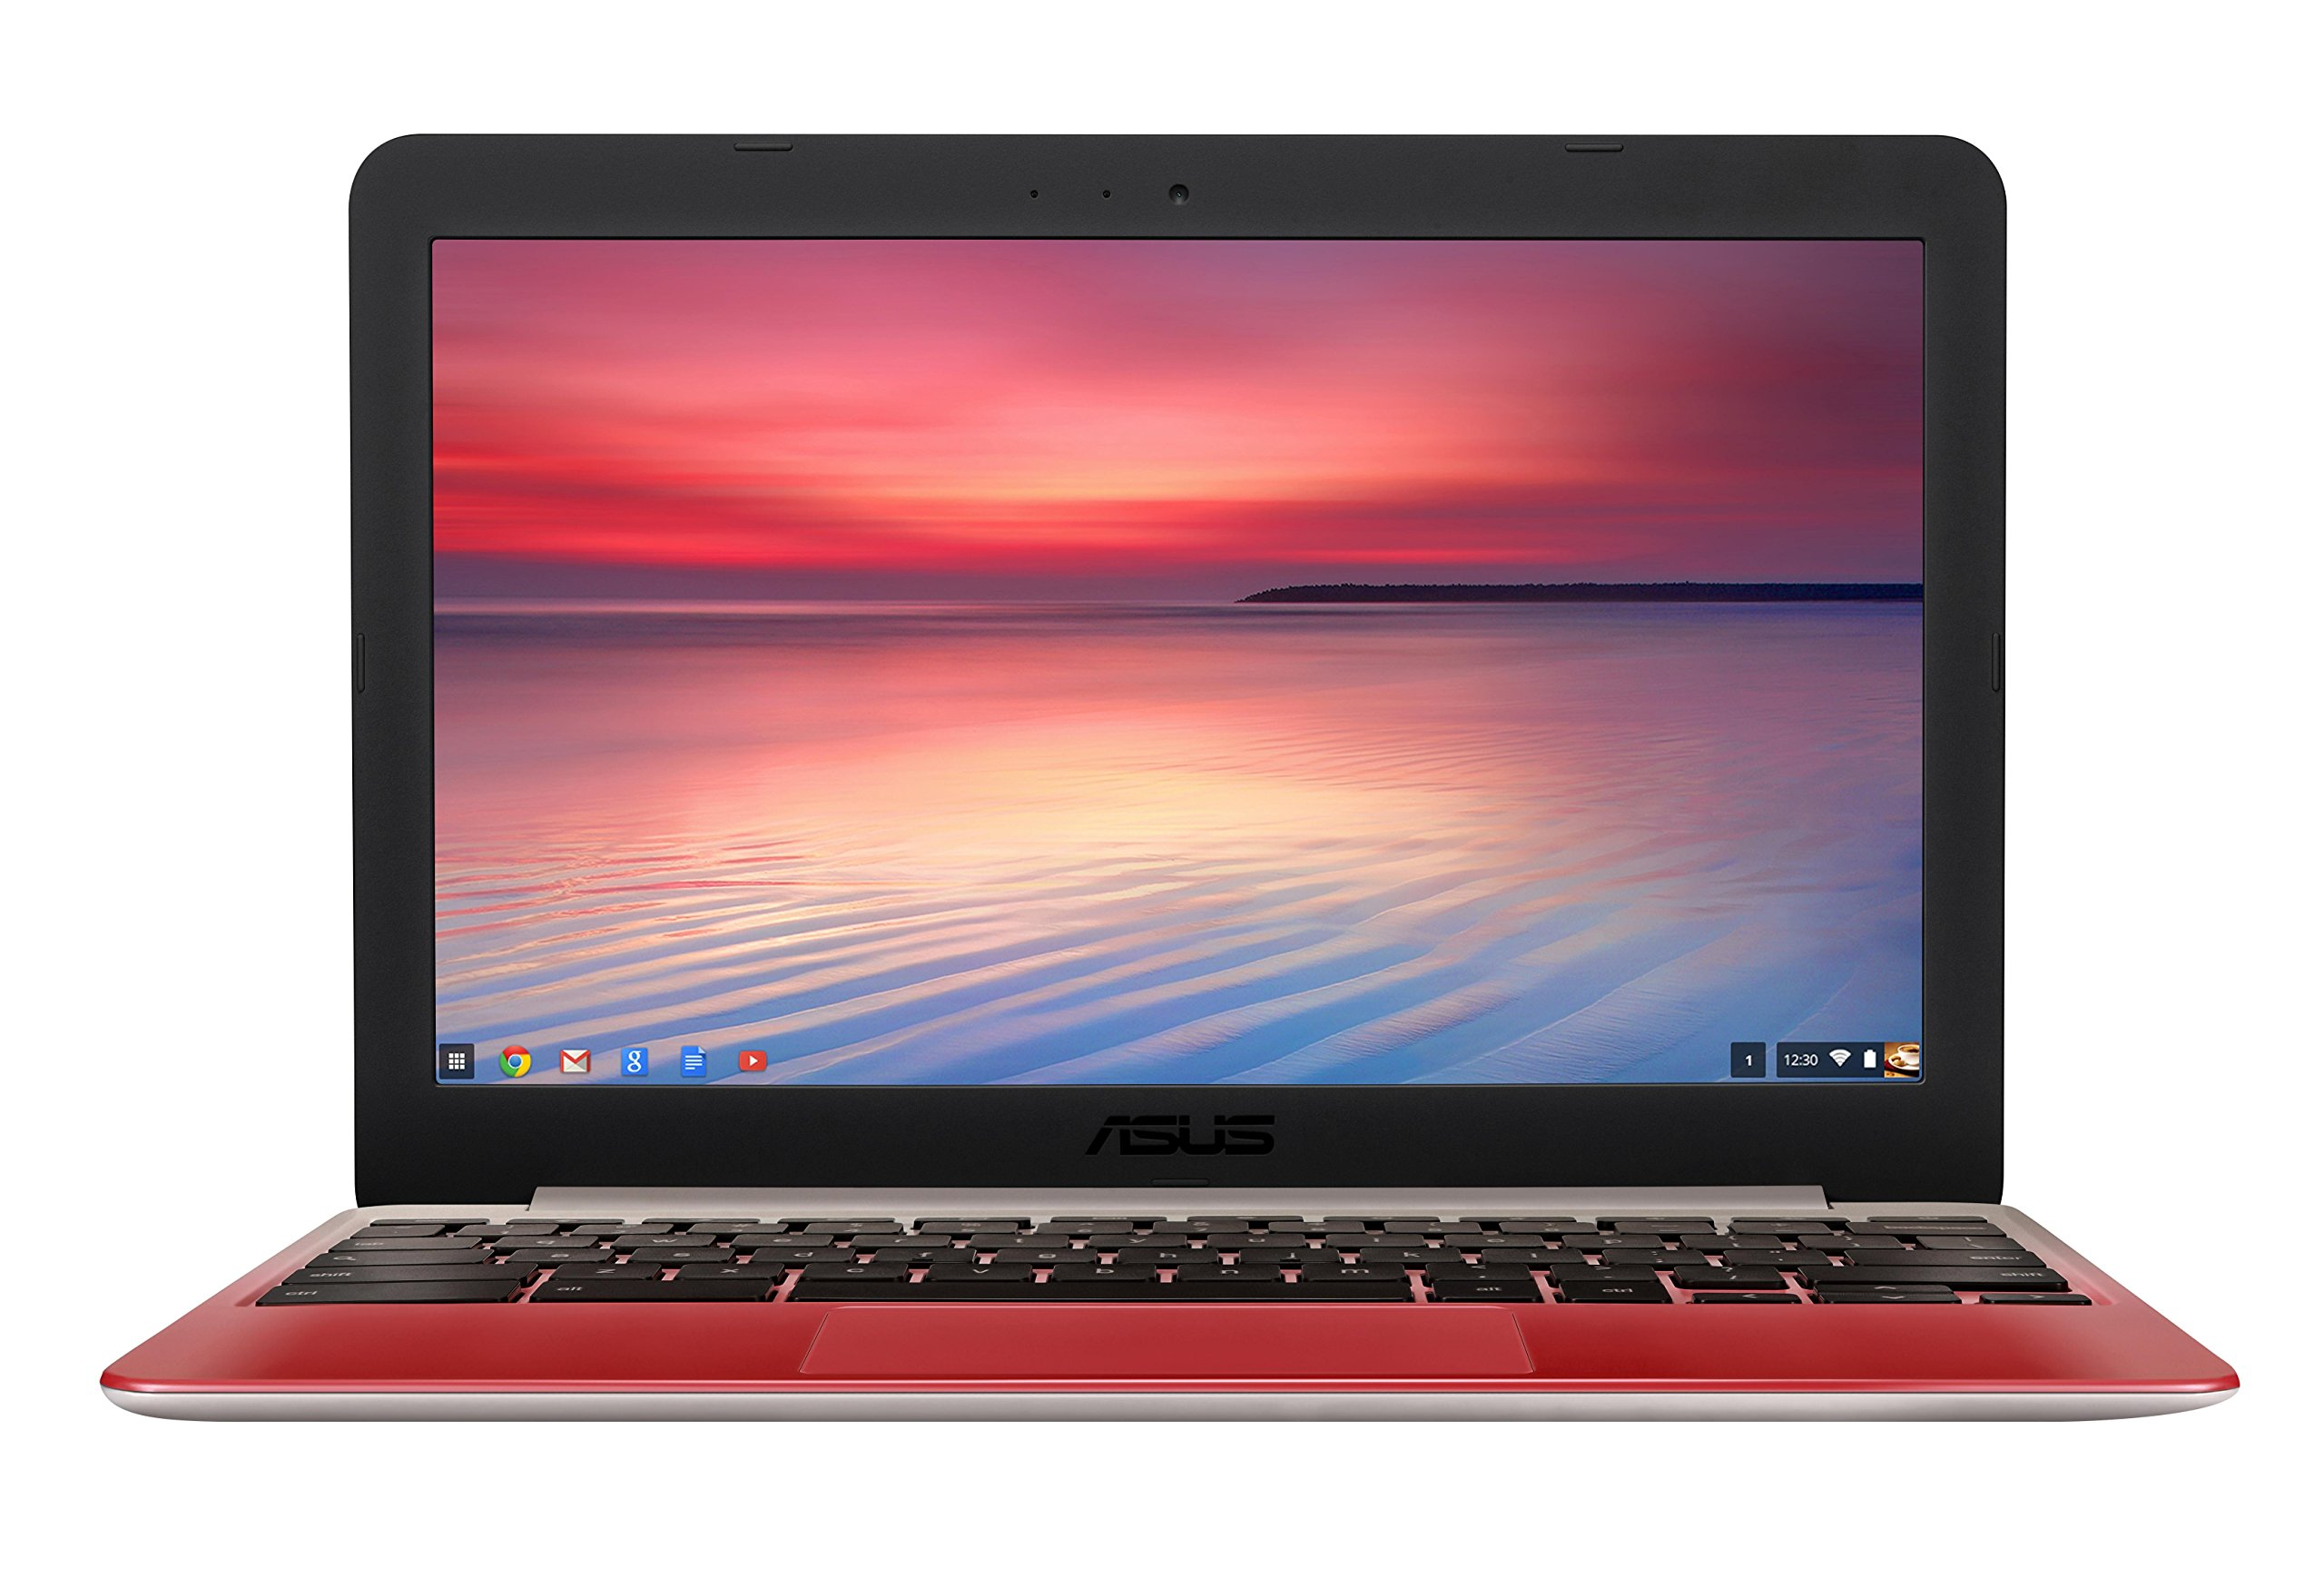 ASUS C201 11.6 Inch Chromebook (Rockchip, 4 GB, 16GB SSD, Lotus Gold/Red) by Asus